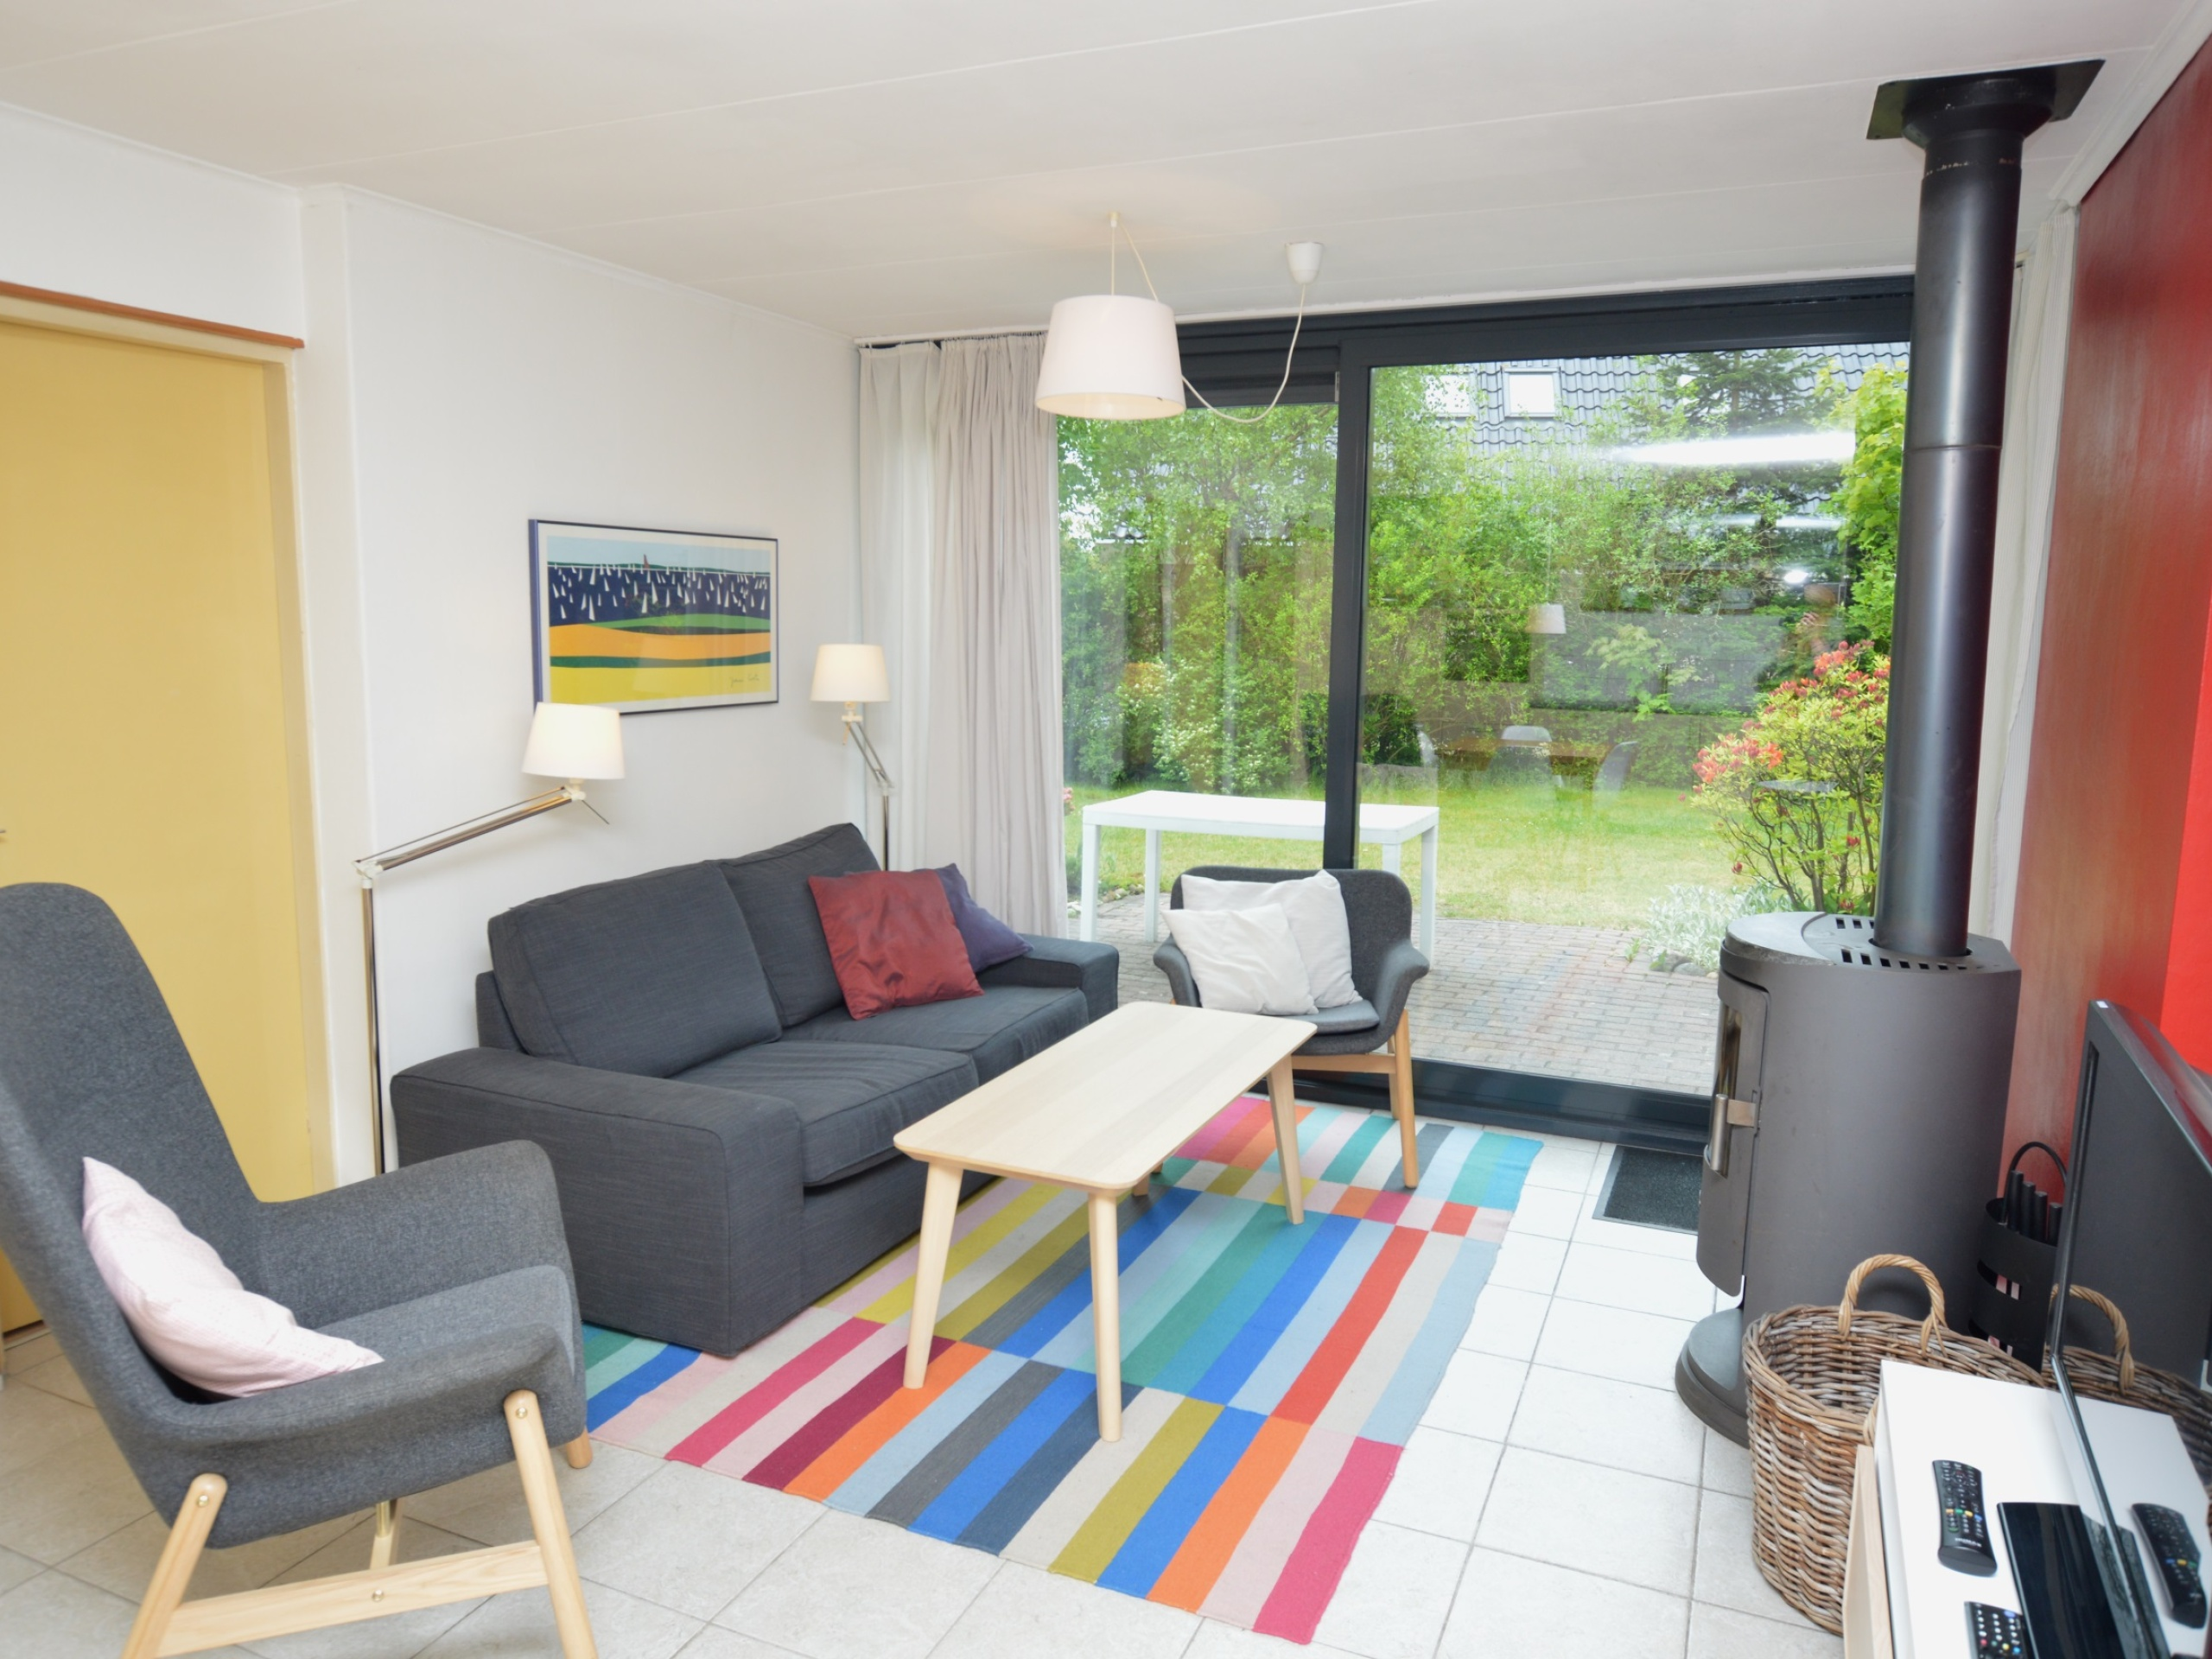 Detached bungalow with lovely big sunny garden near the woods